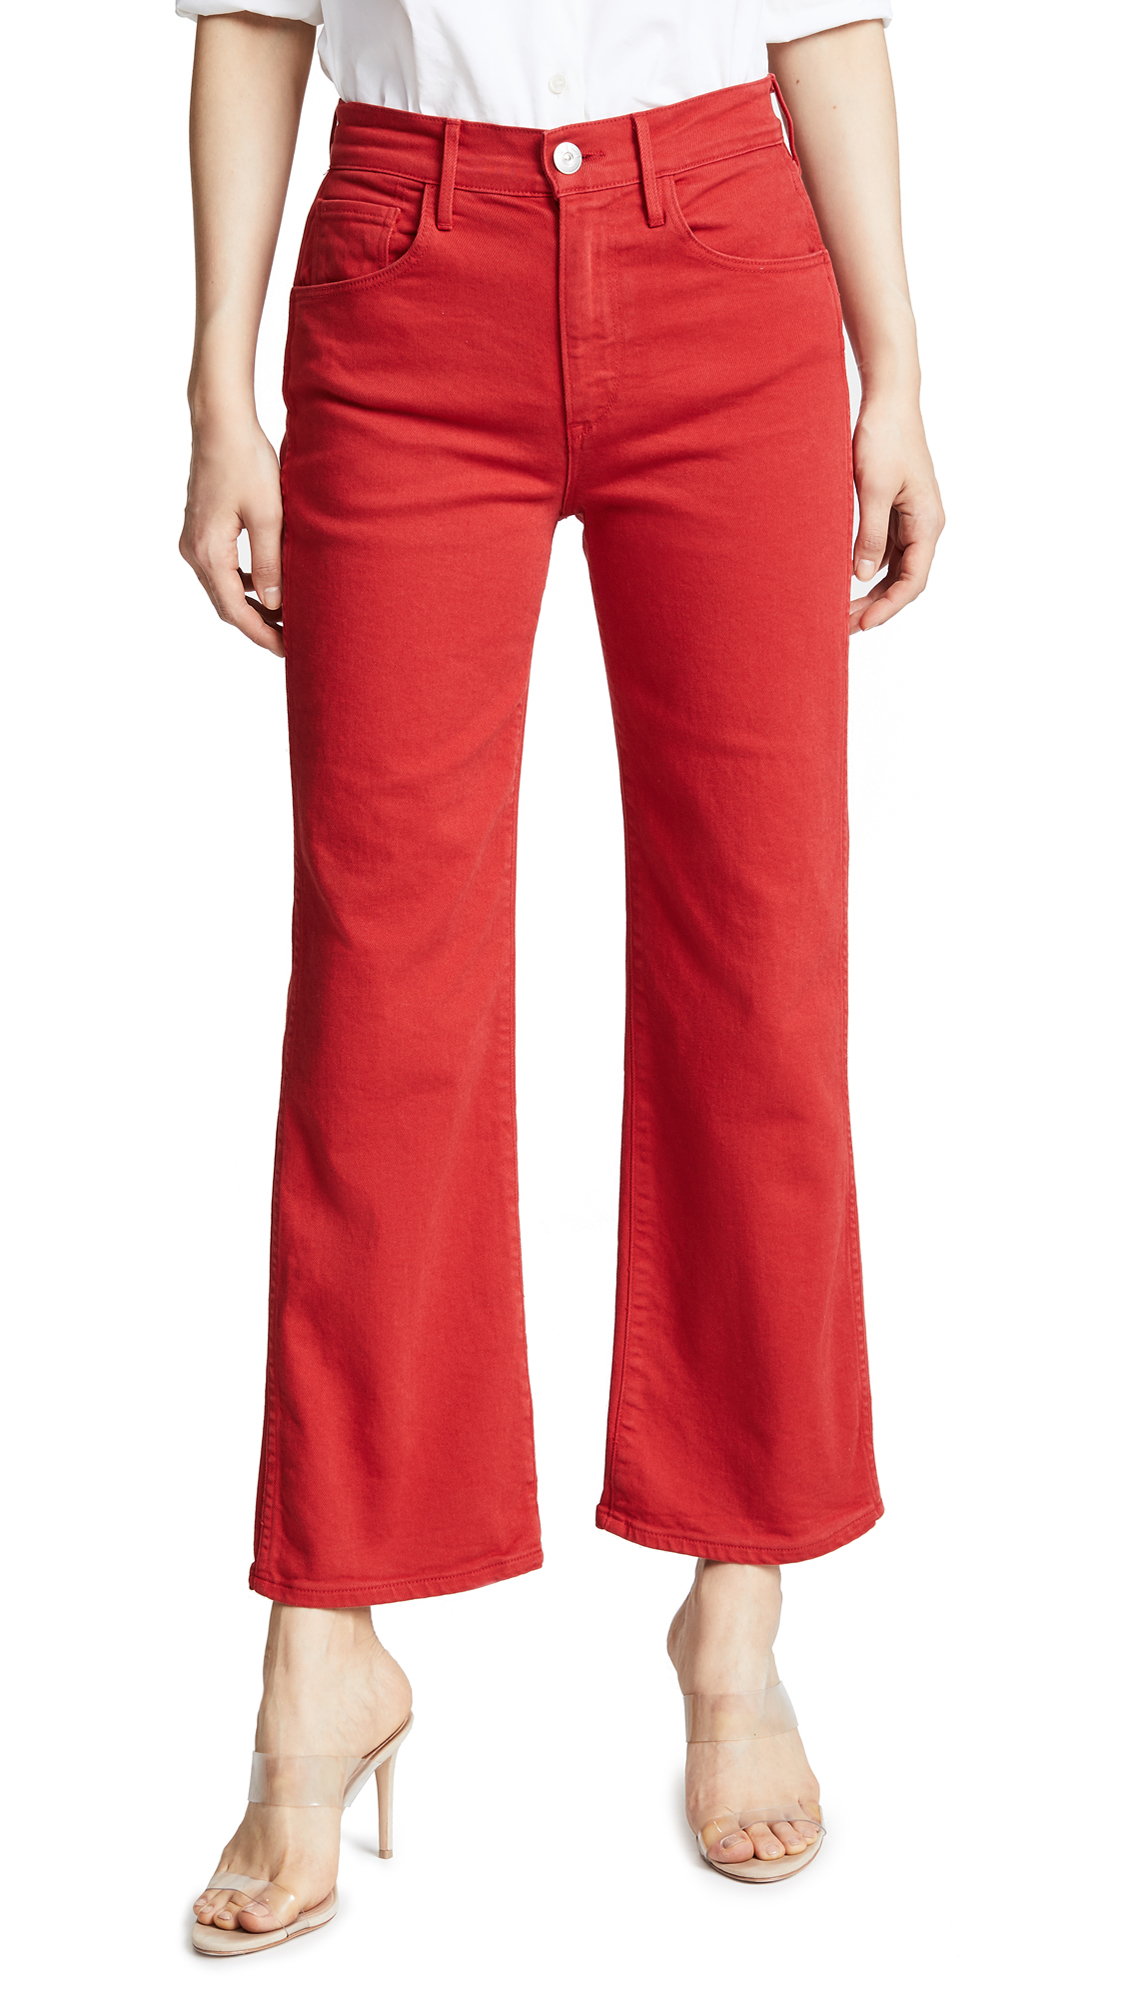 3x1 W4 Shelter Wide Leg Crop Jeans - Apple Red